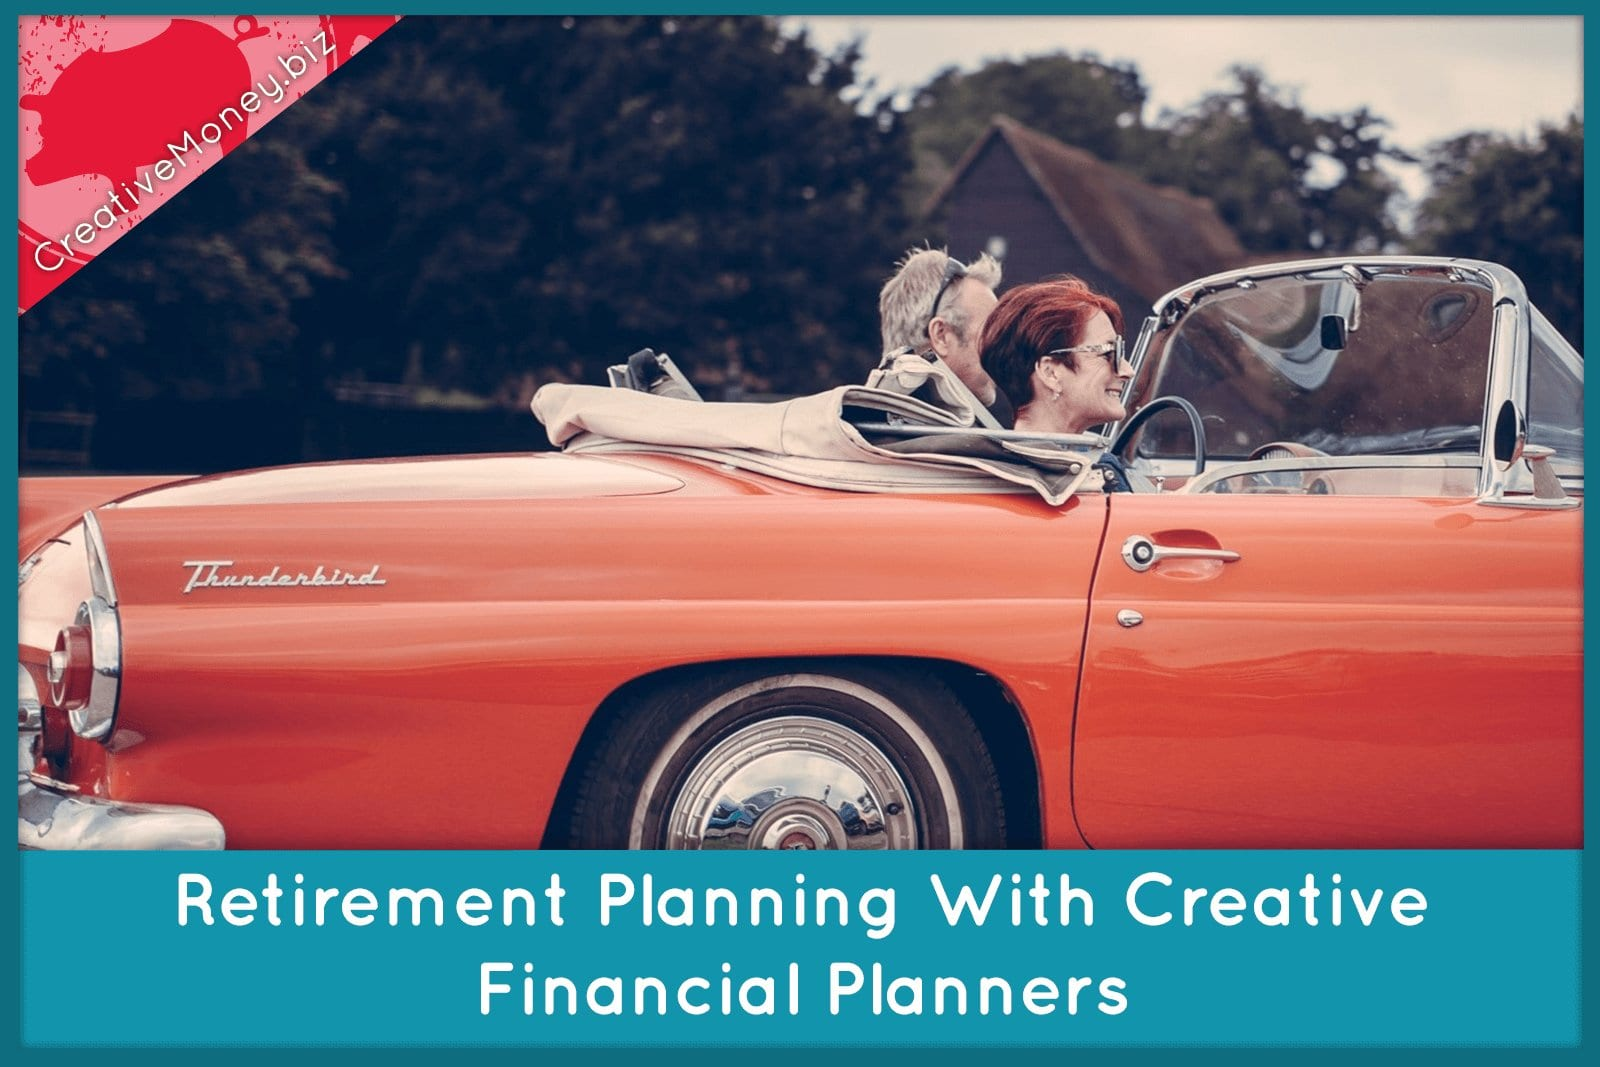 Retirement Planning with Creative Financial Planners